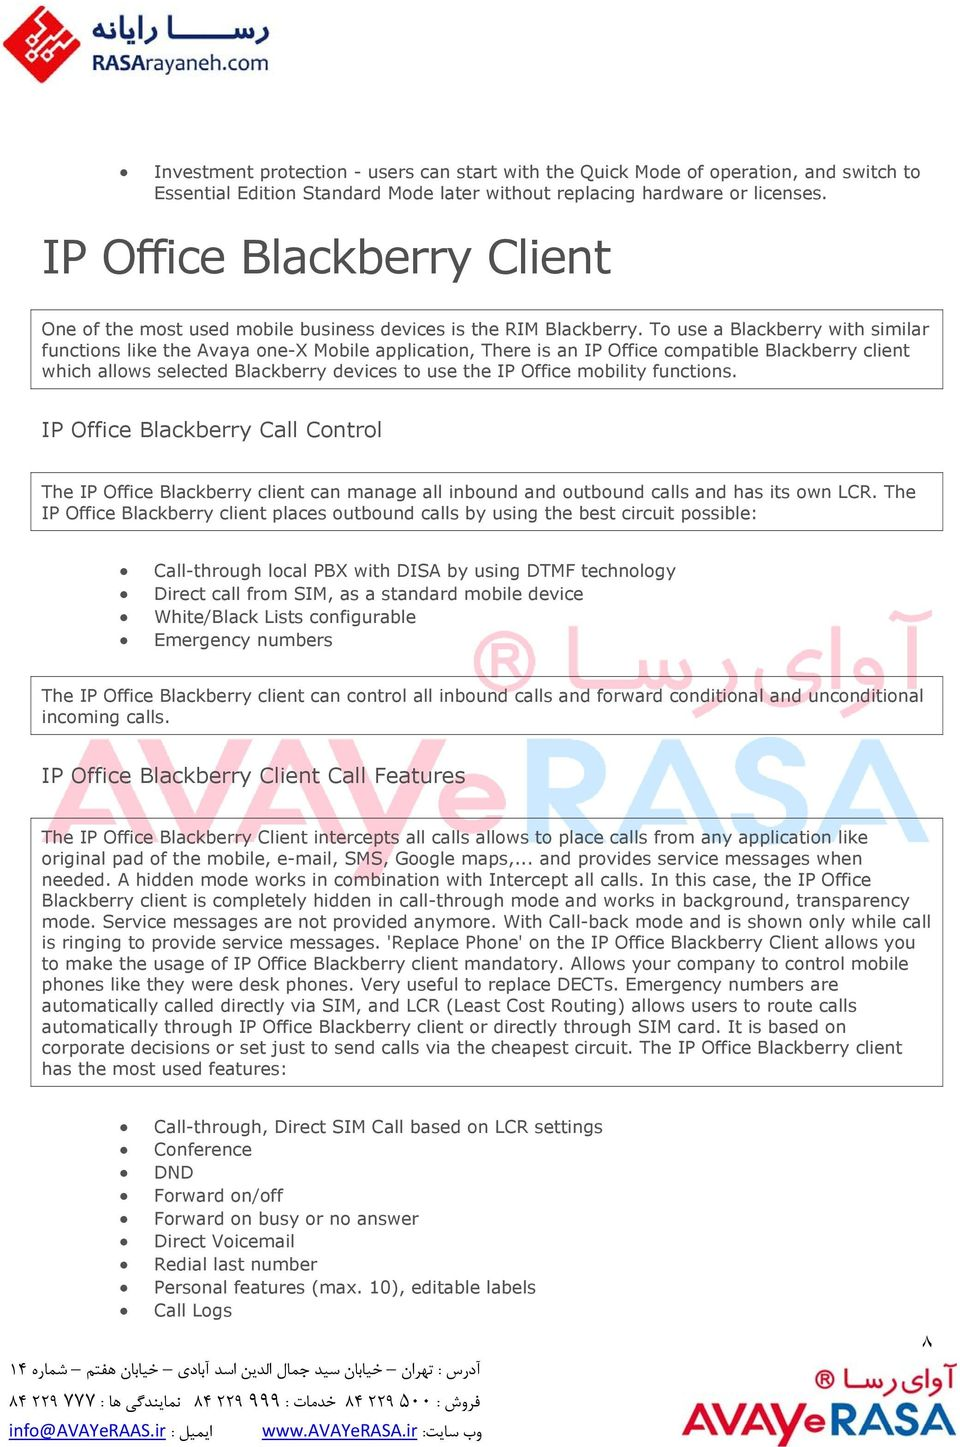 To use a Blackberry with similar functions like the Avaya one-x Mobile application, There is an IP Office compatible Blackberry client which allows selected Blackberry devices to use the IP Office